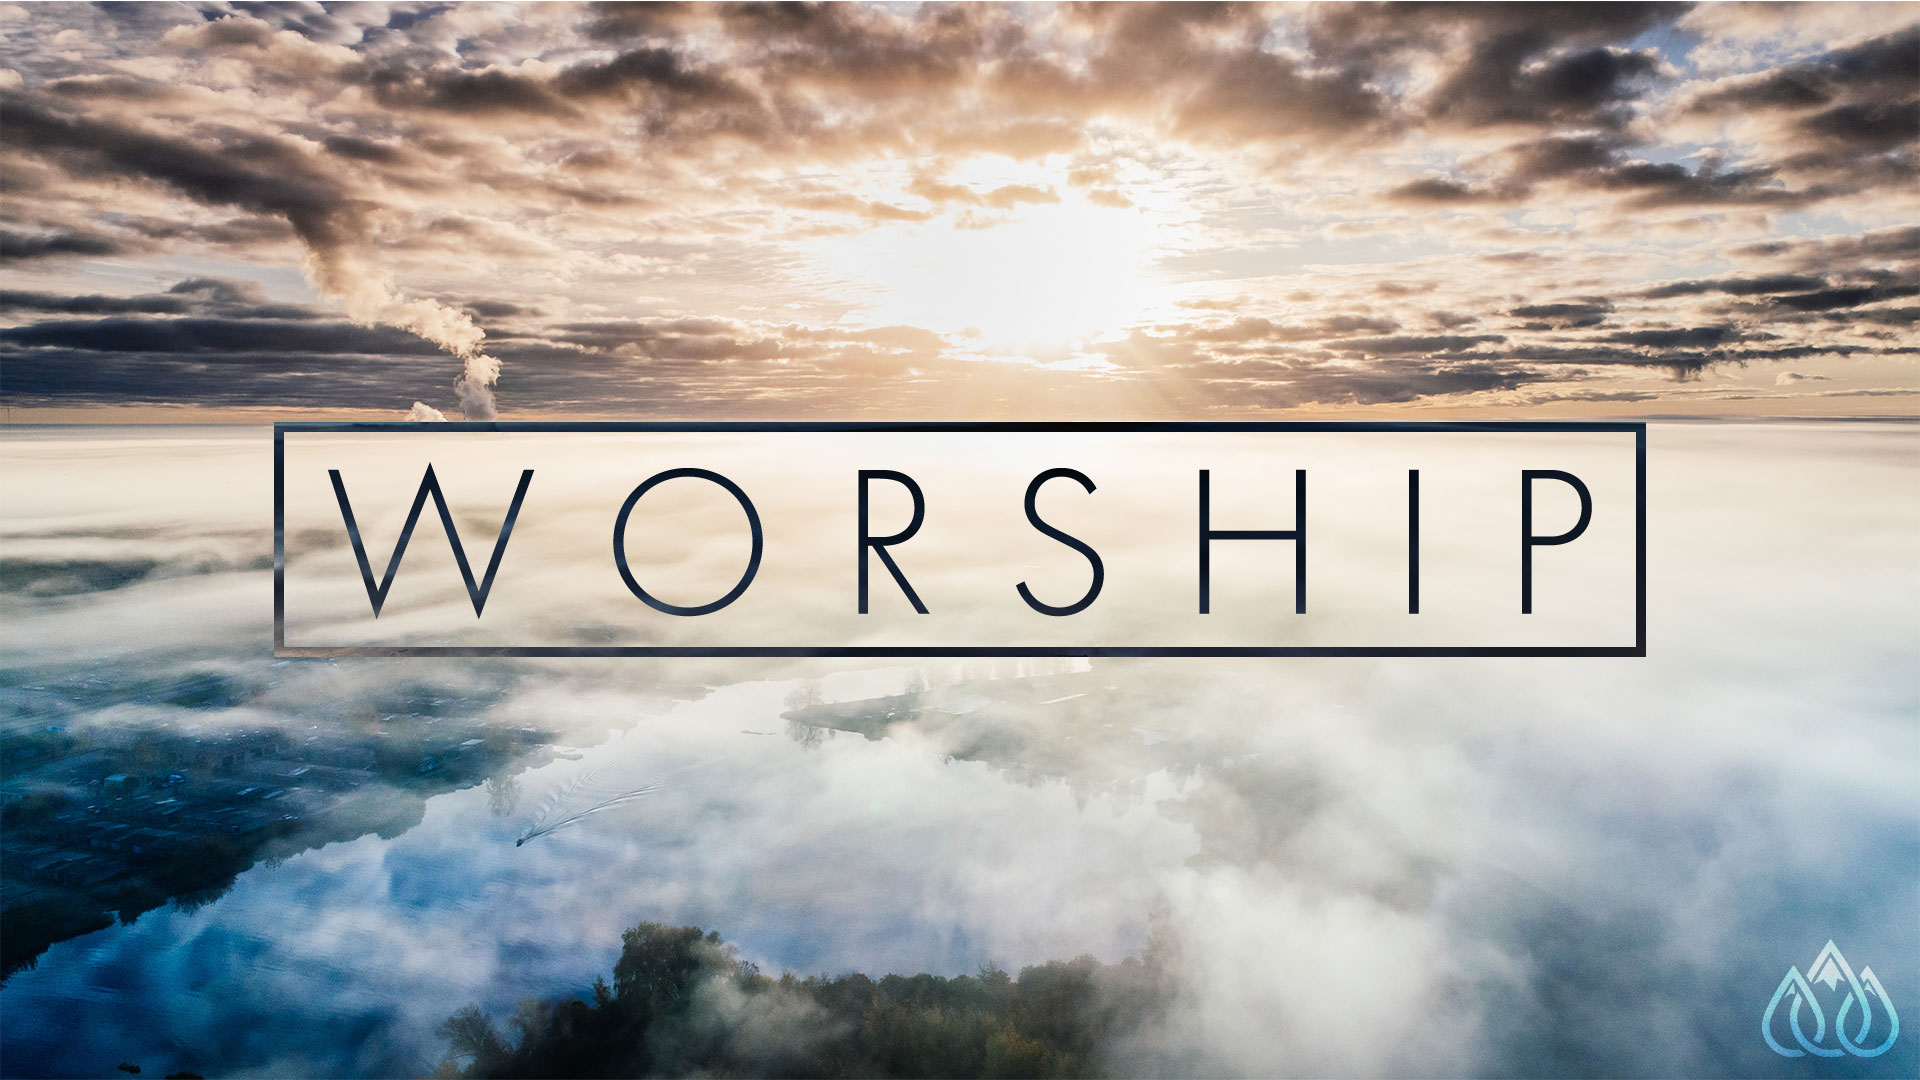 Worship: Week 2 | The Benefits of Worship Image